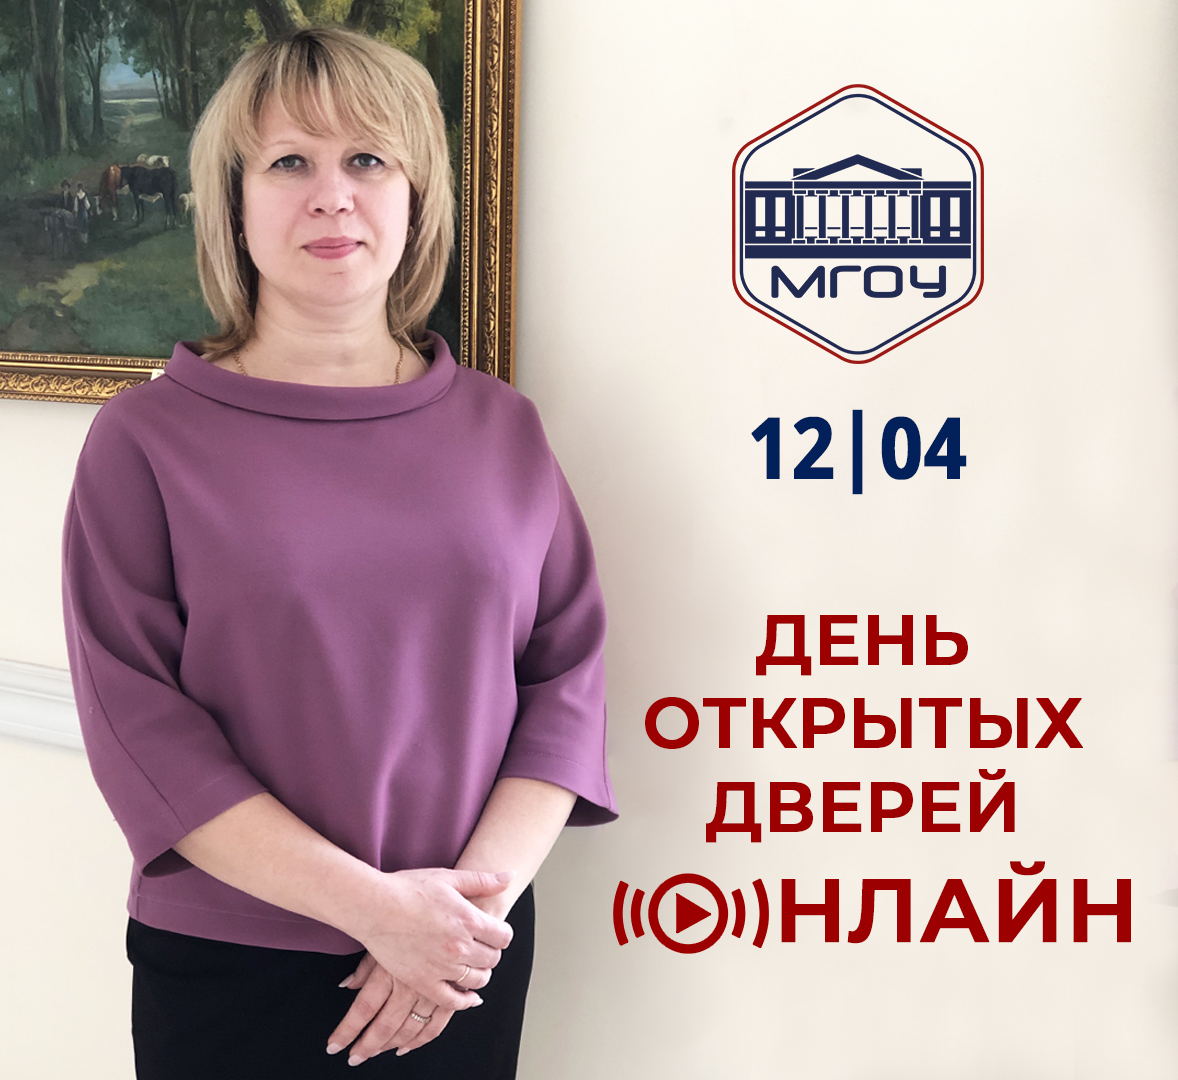 ONLINE OPEN UNIVERSITY DAY IN THE MOSCOW REGION STATE UNIVERSITY